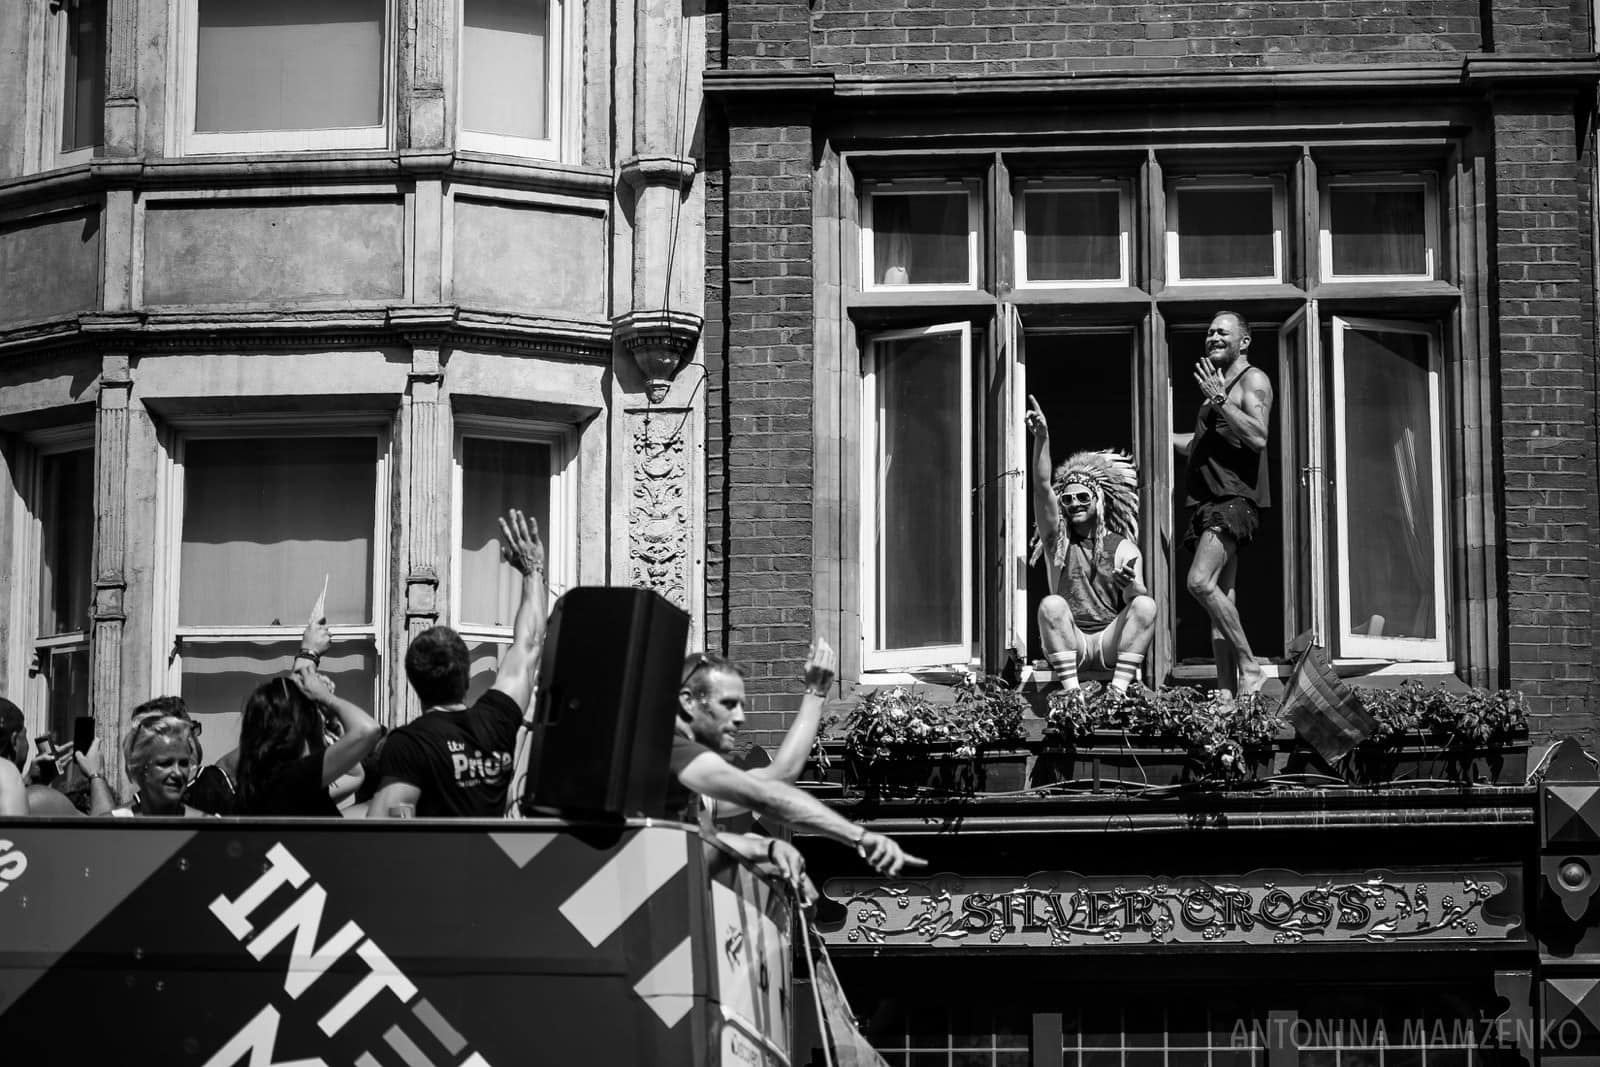 people celebrating London Pride 2018 dancing in windows of the building lining up Whitehall